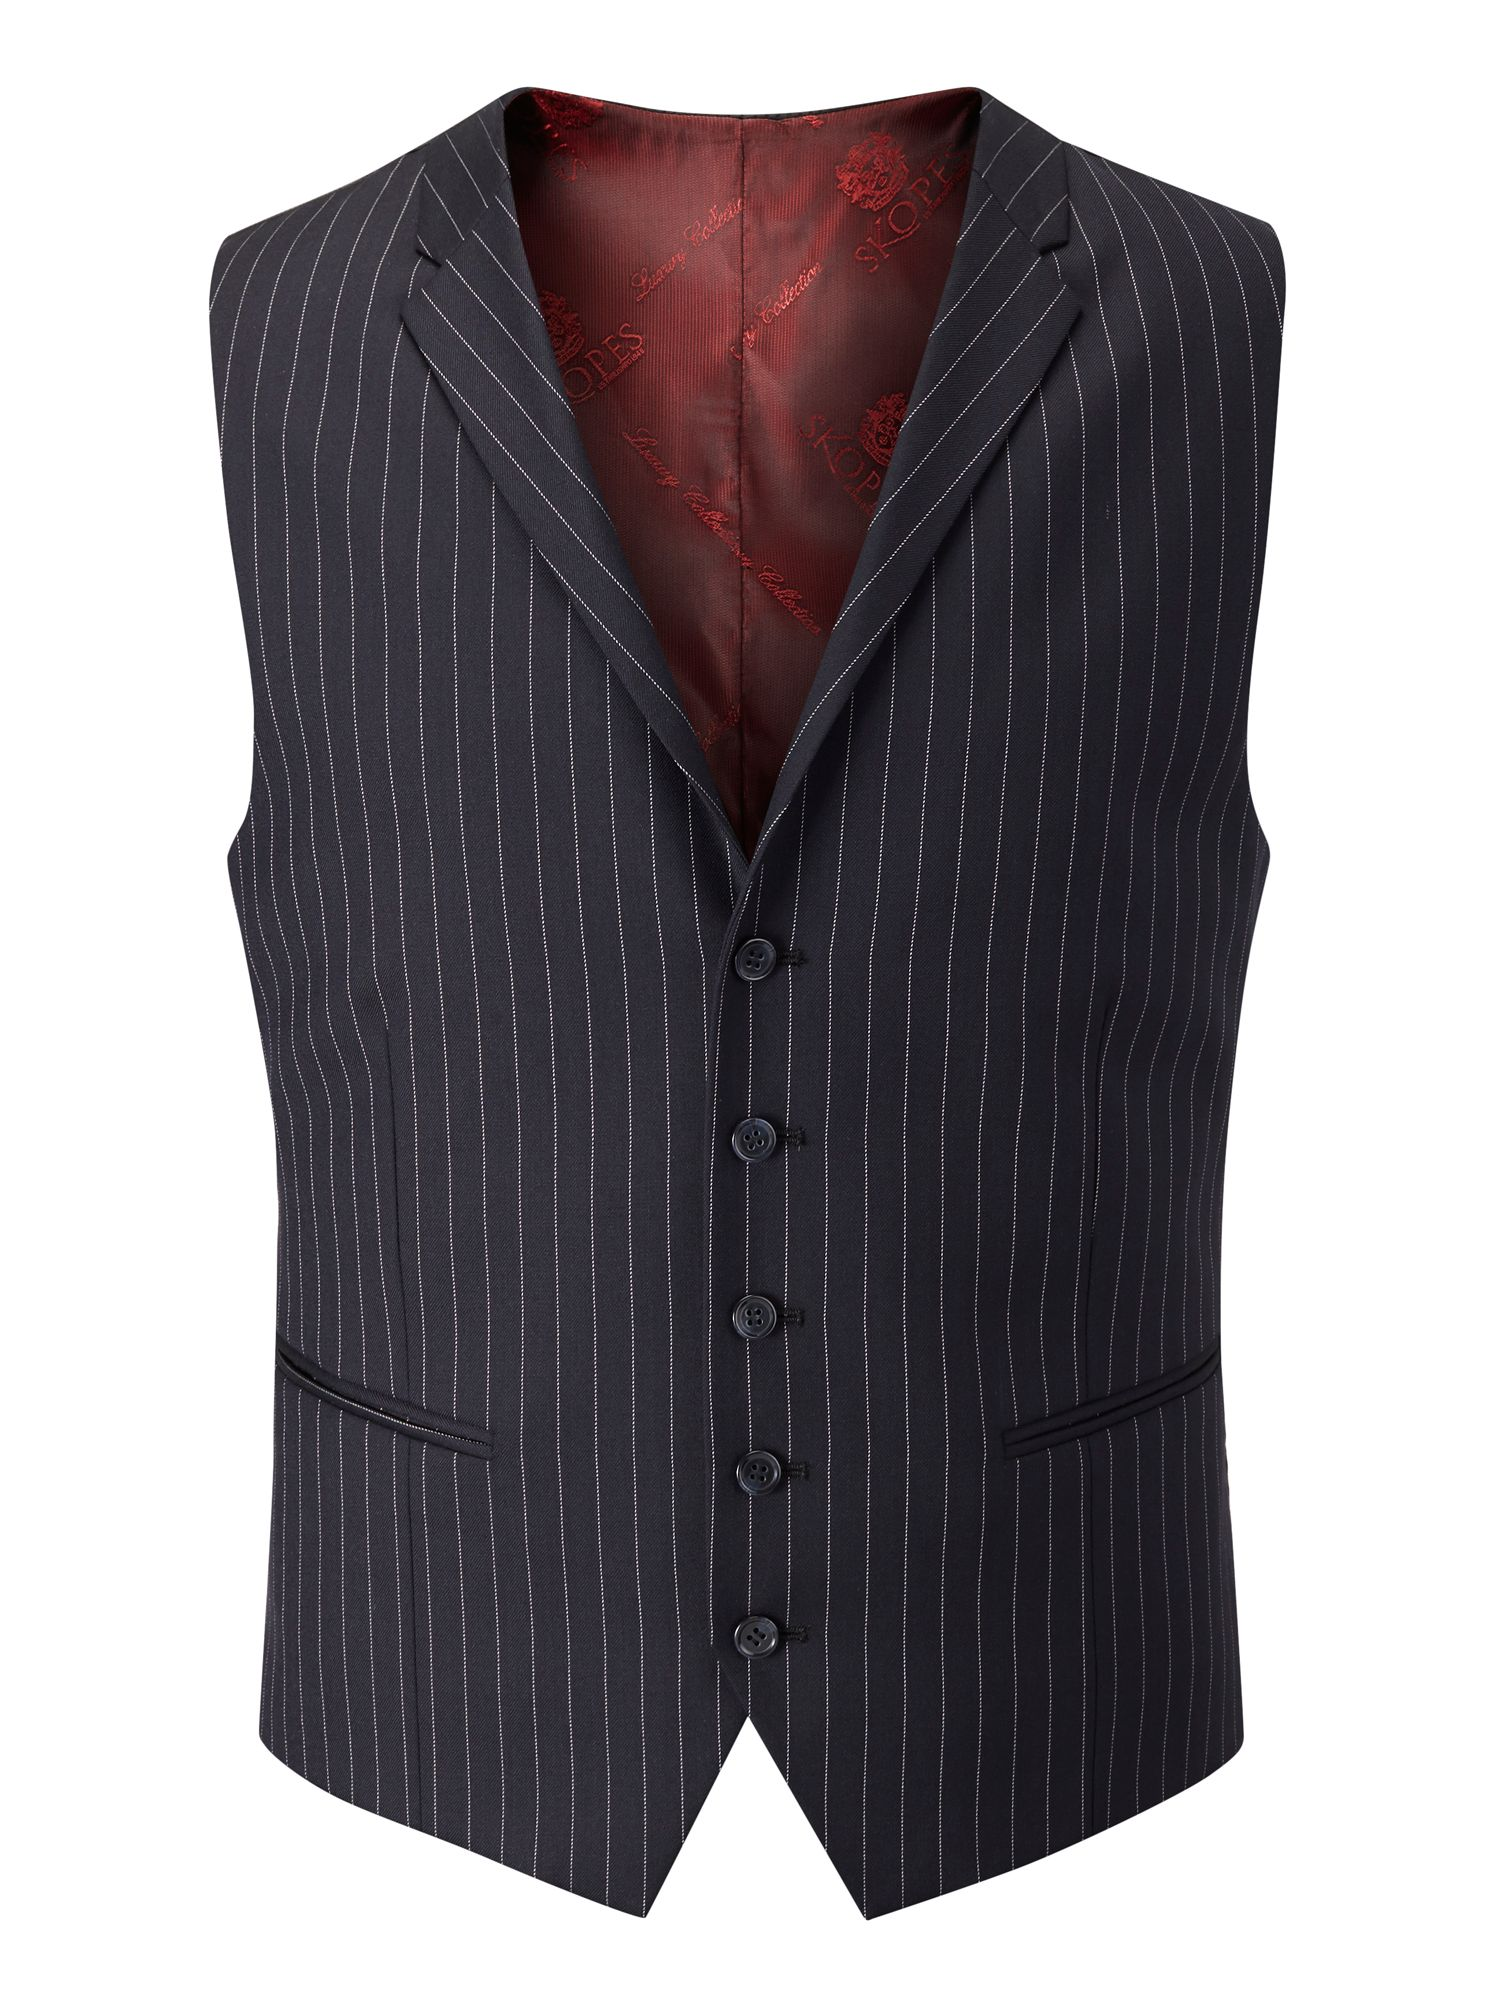 Mens Skopes Phillip Stripe Notch Collar Classic Fit Waistcoat $29.00 AT vintagedancer.com